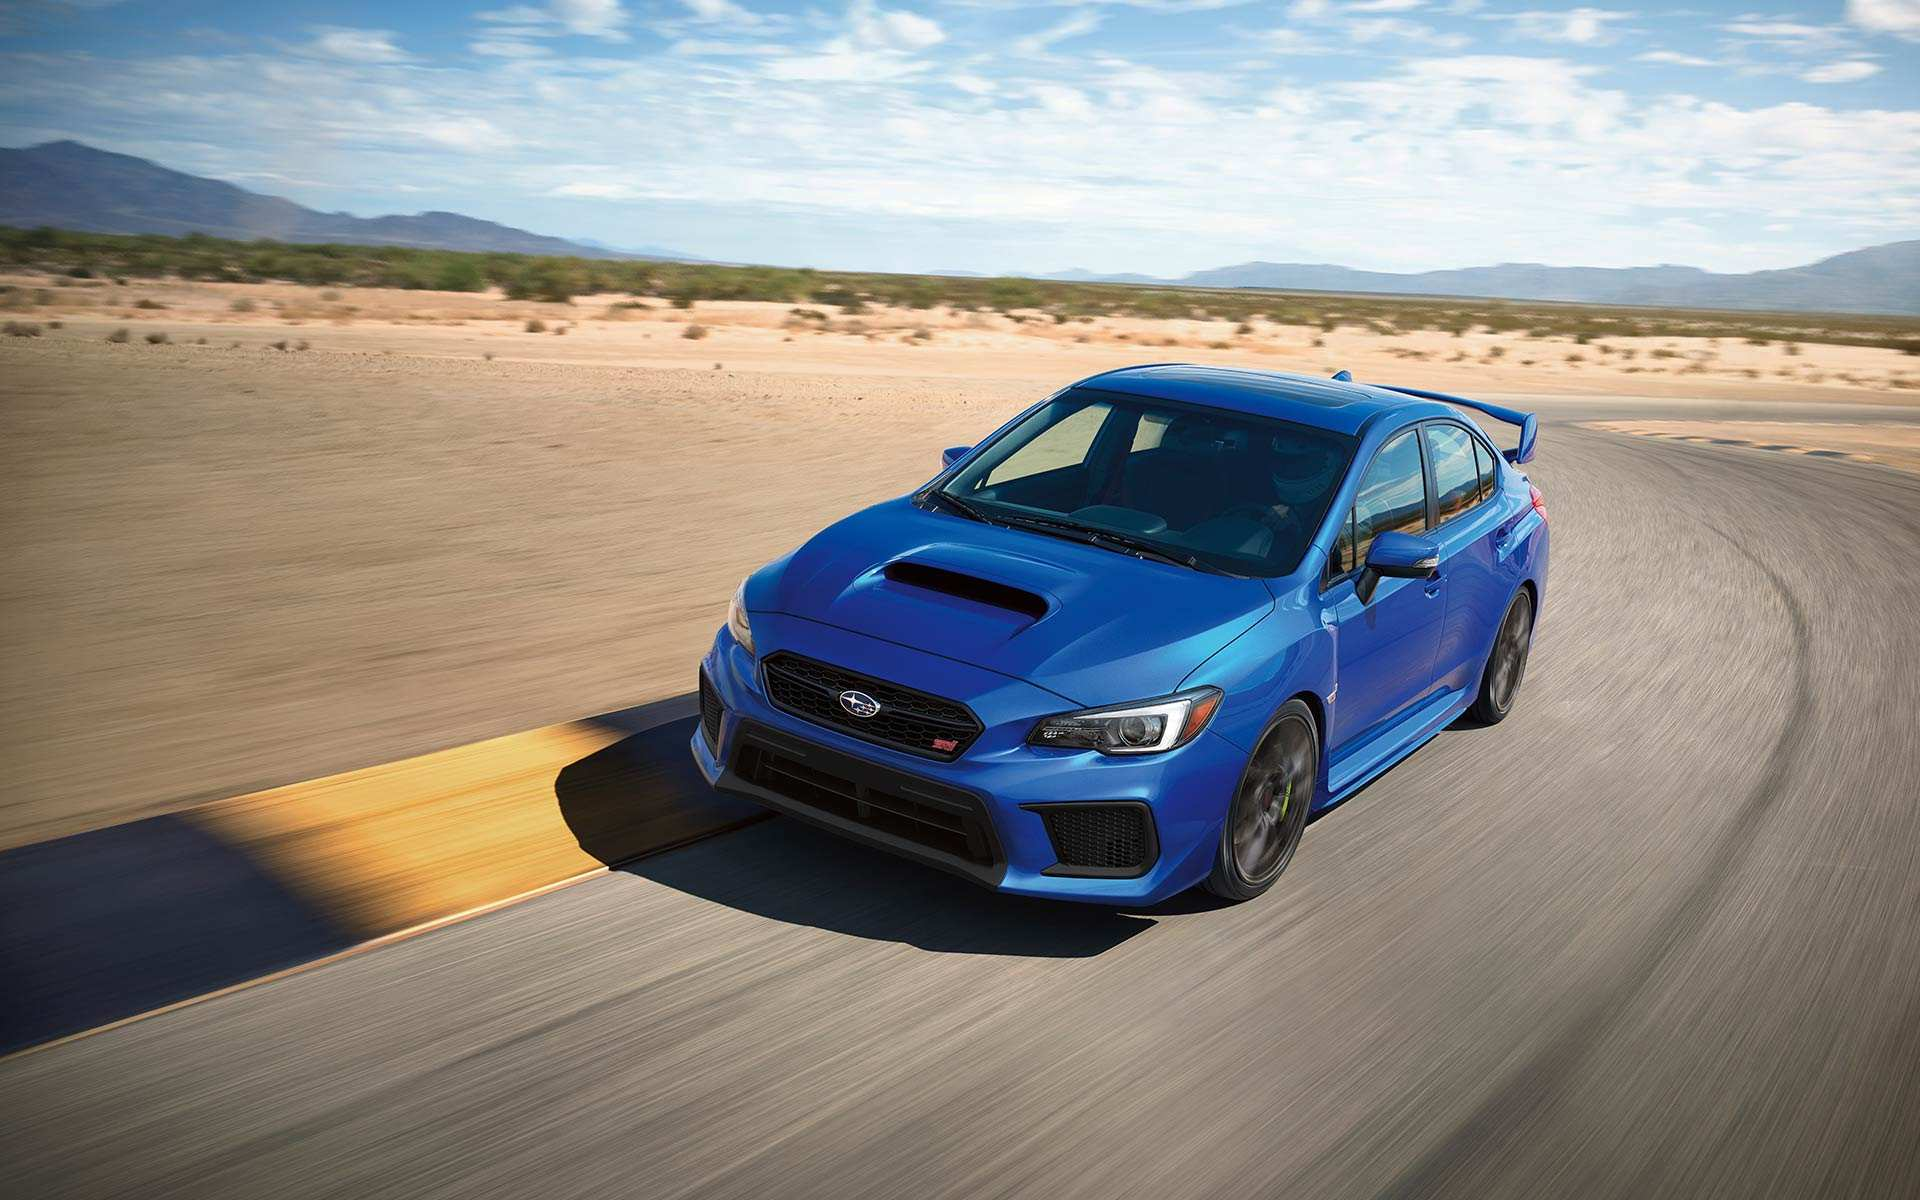 72 Best Review 2019 Subaru Wrx Sti Hatch Interior by 2019 Subaru Wrx Sti Hatch